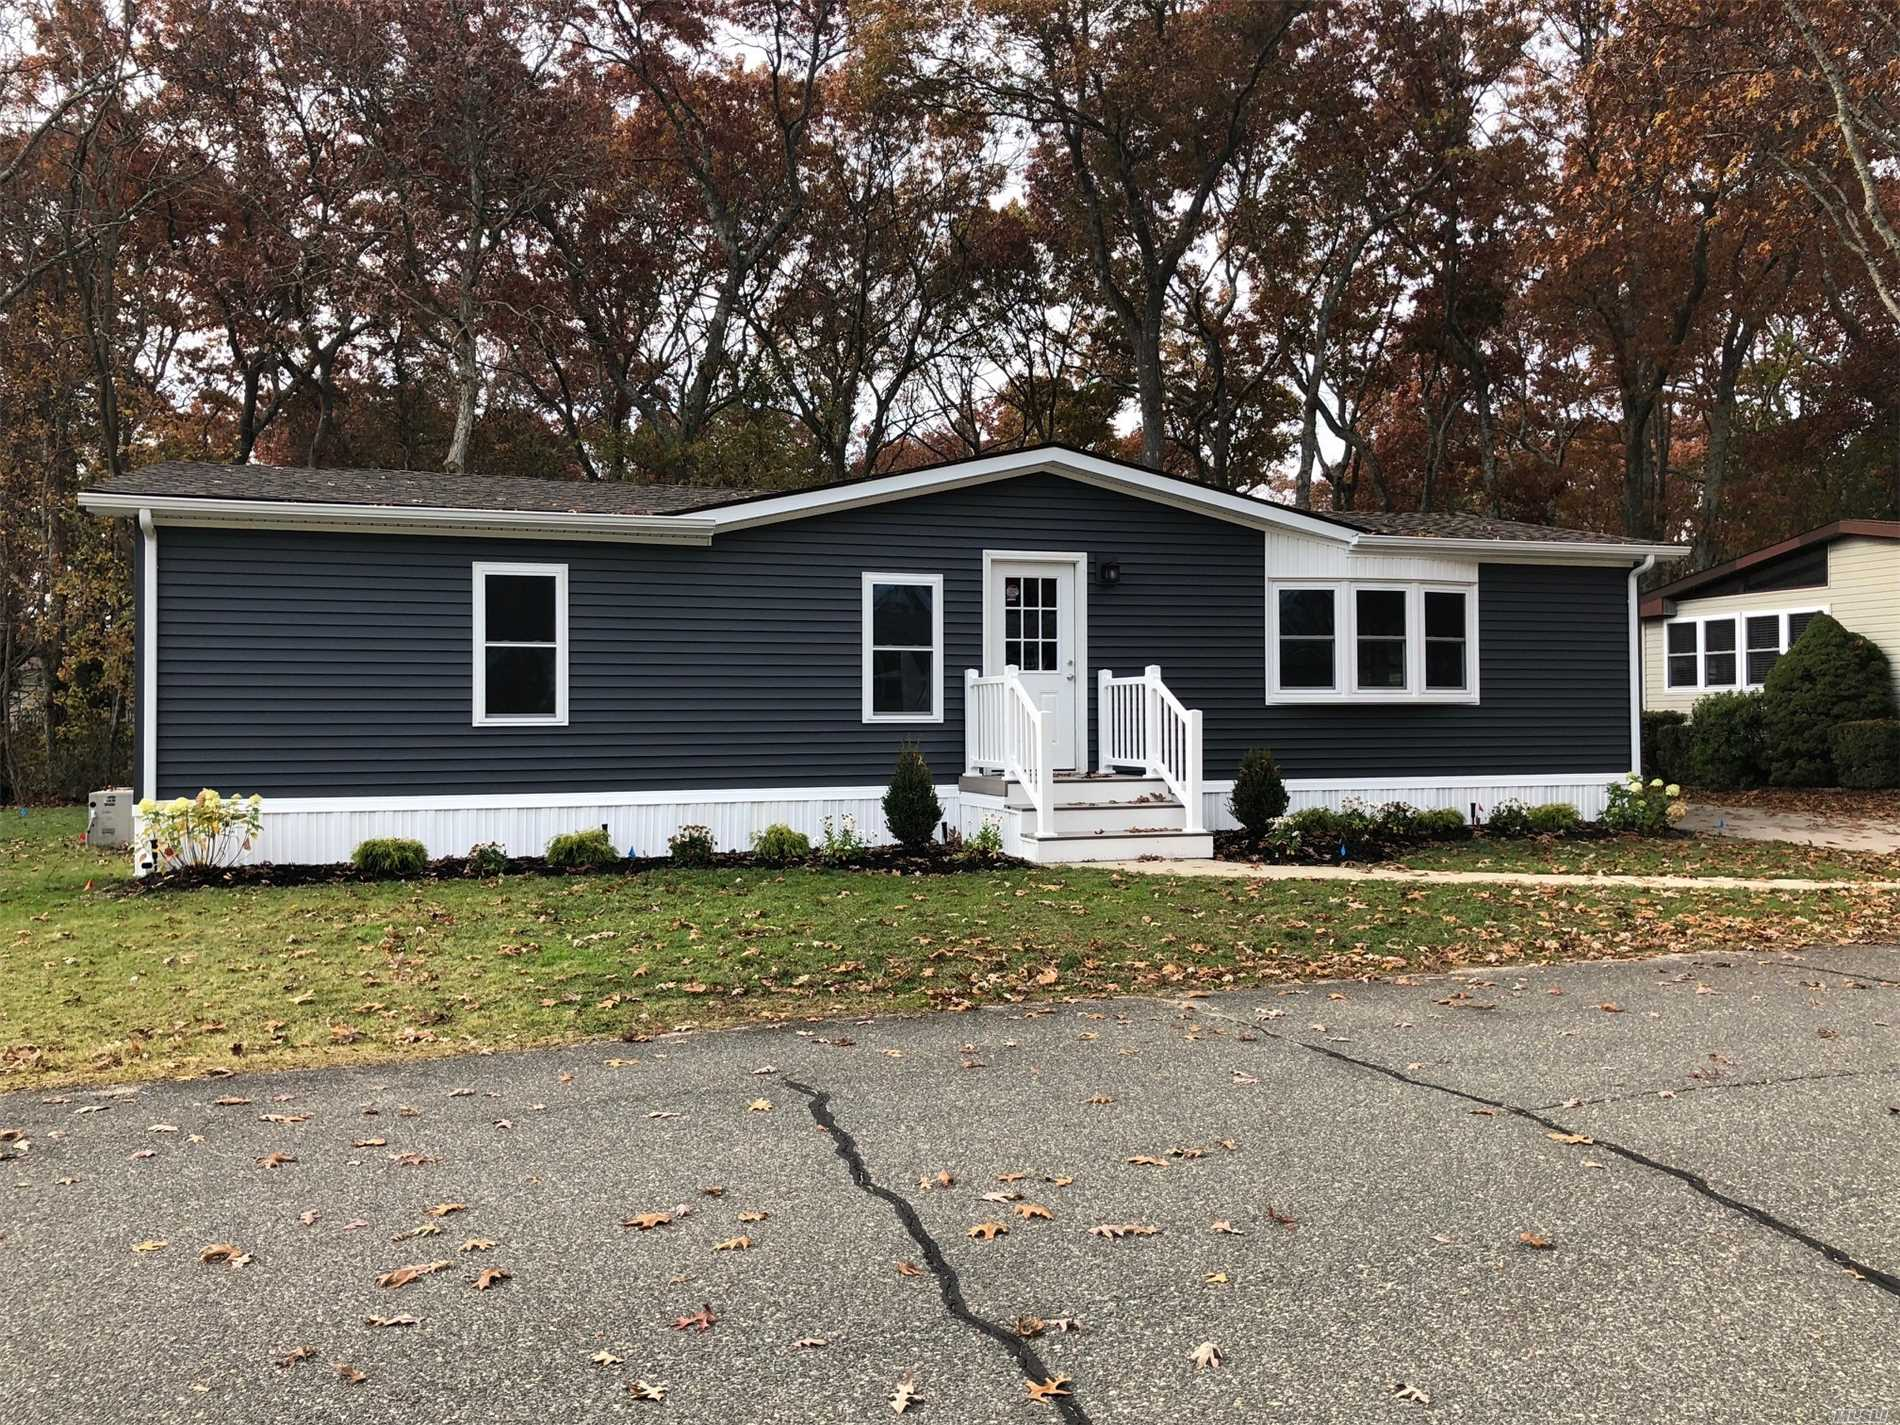 Home Has Been Completely Renovated! 2 Bedroom, 2 Bath, Lr Dr, Handicap Ramp At Rear Of Home. New Windows, Roof, Walls, Kitchen, Flooring, Plumbing, Baths, Decking, Rails, Skirting, Landscaping, Sprinkler System & New Hot Water Heater.  - Oil Heat, & Central Ac